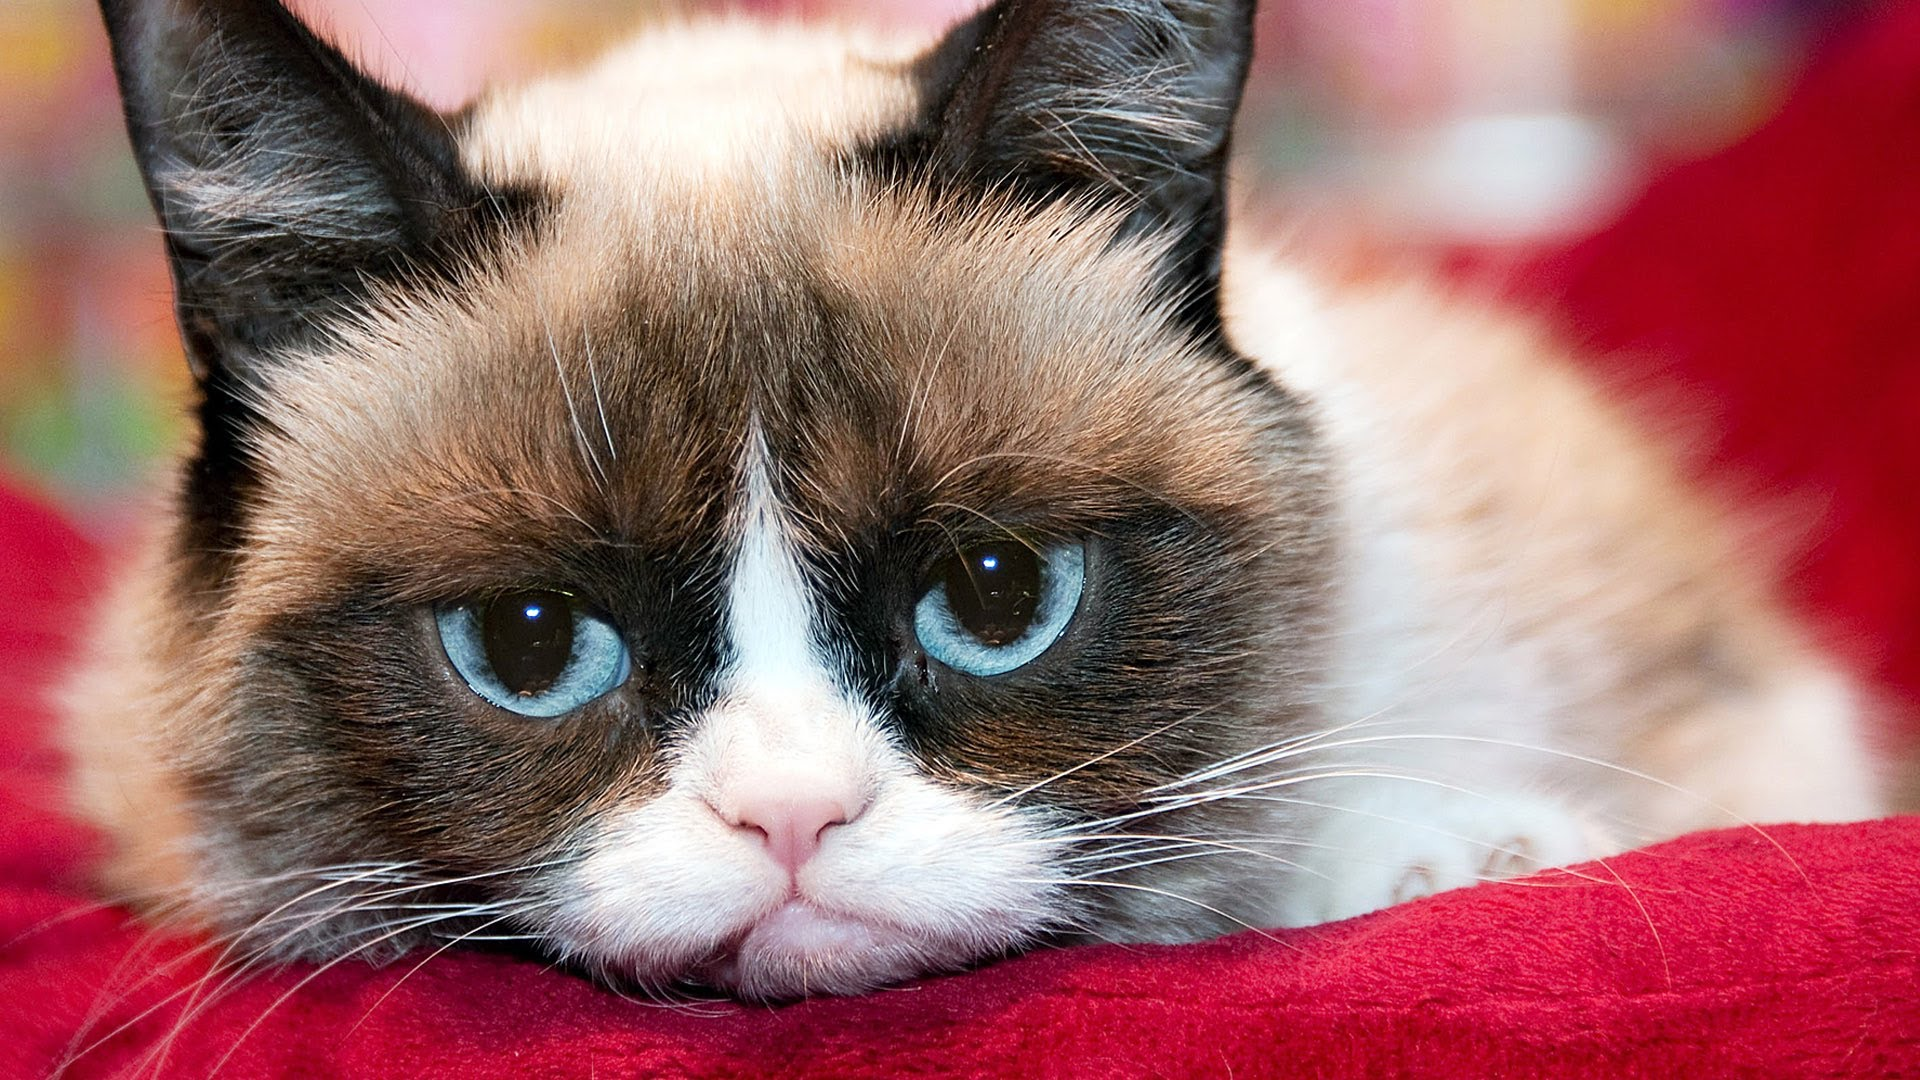 grumpy cat wallpapers high quality download free